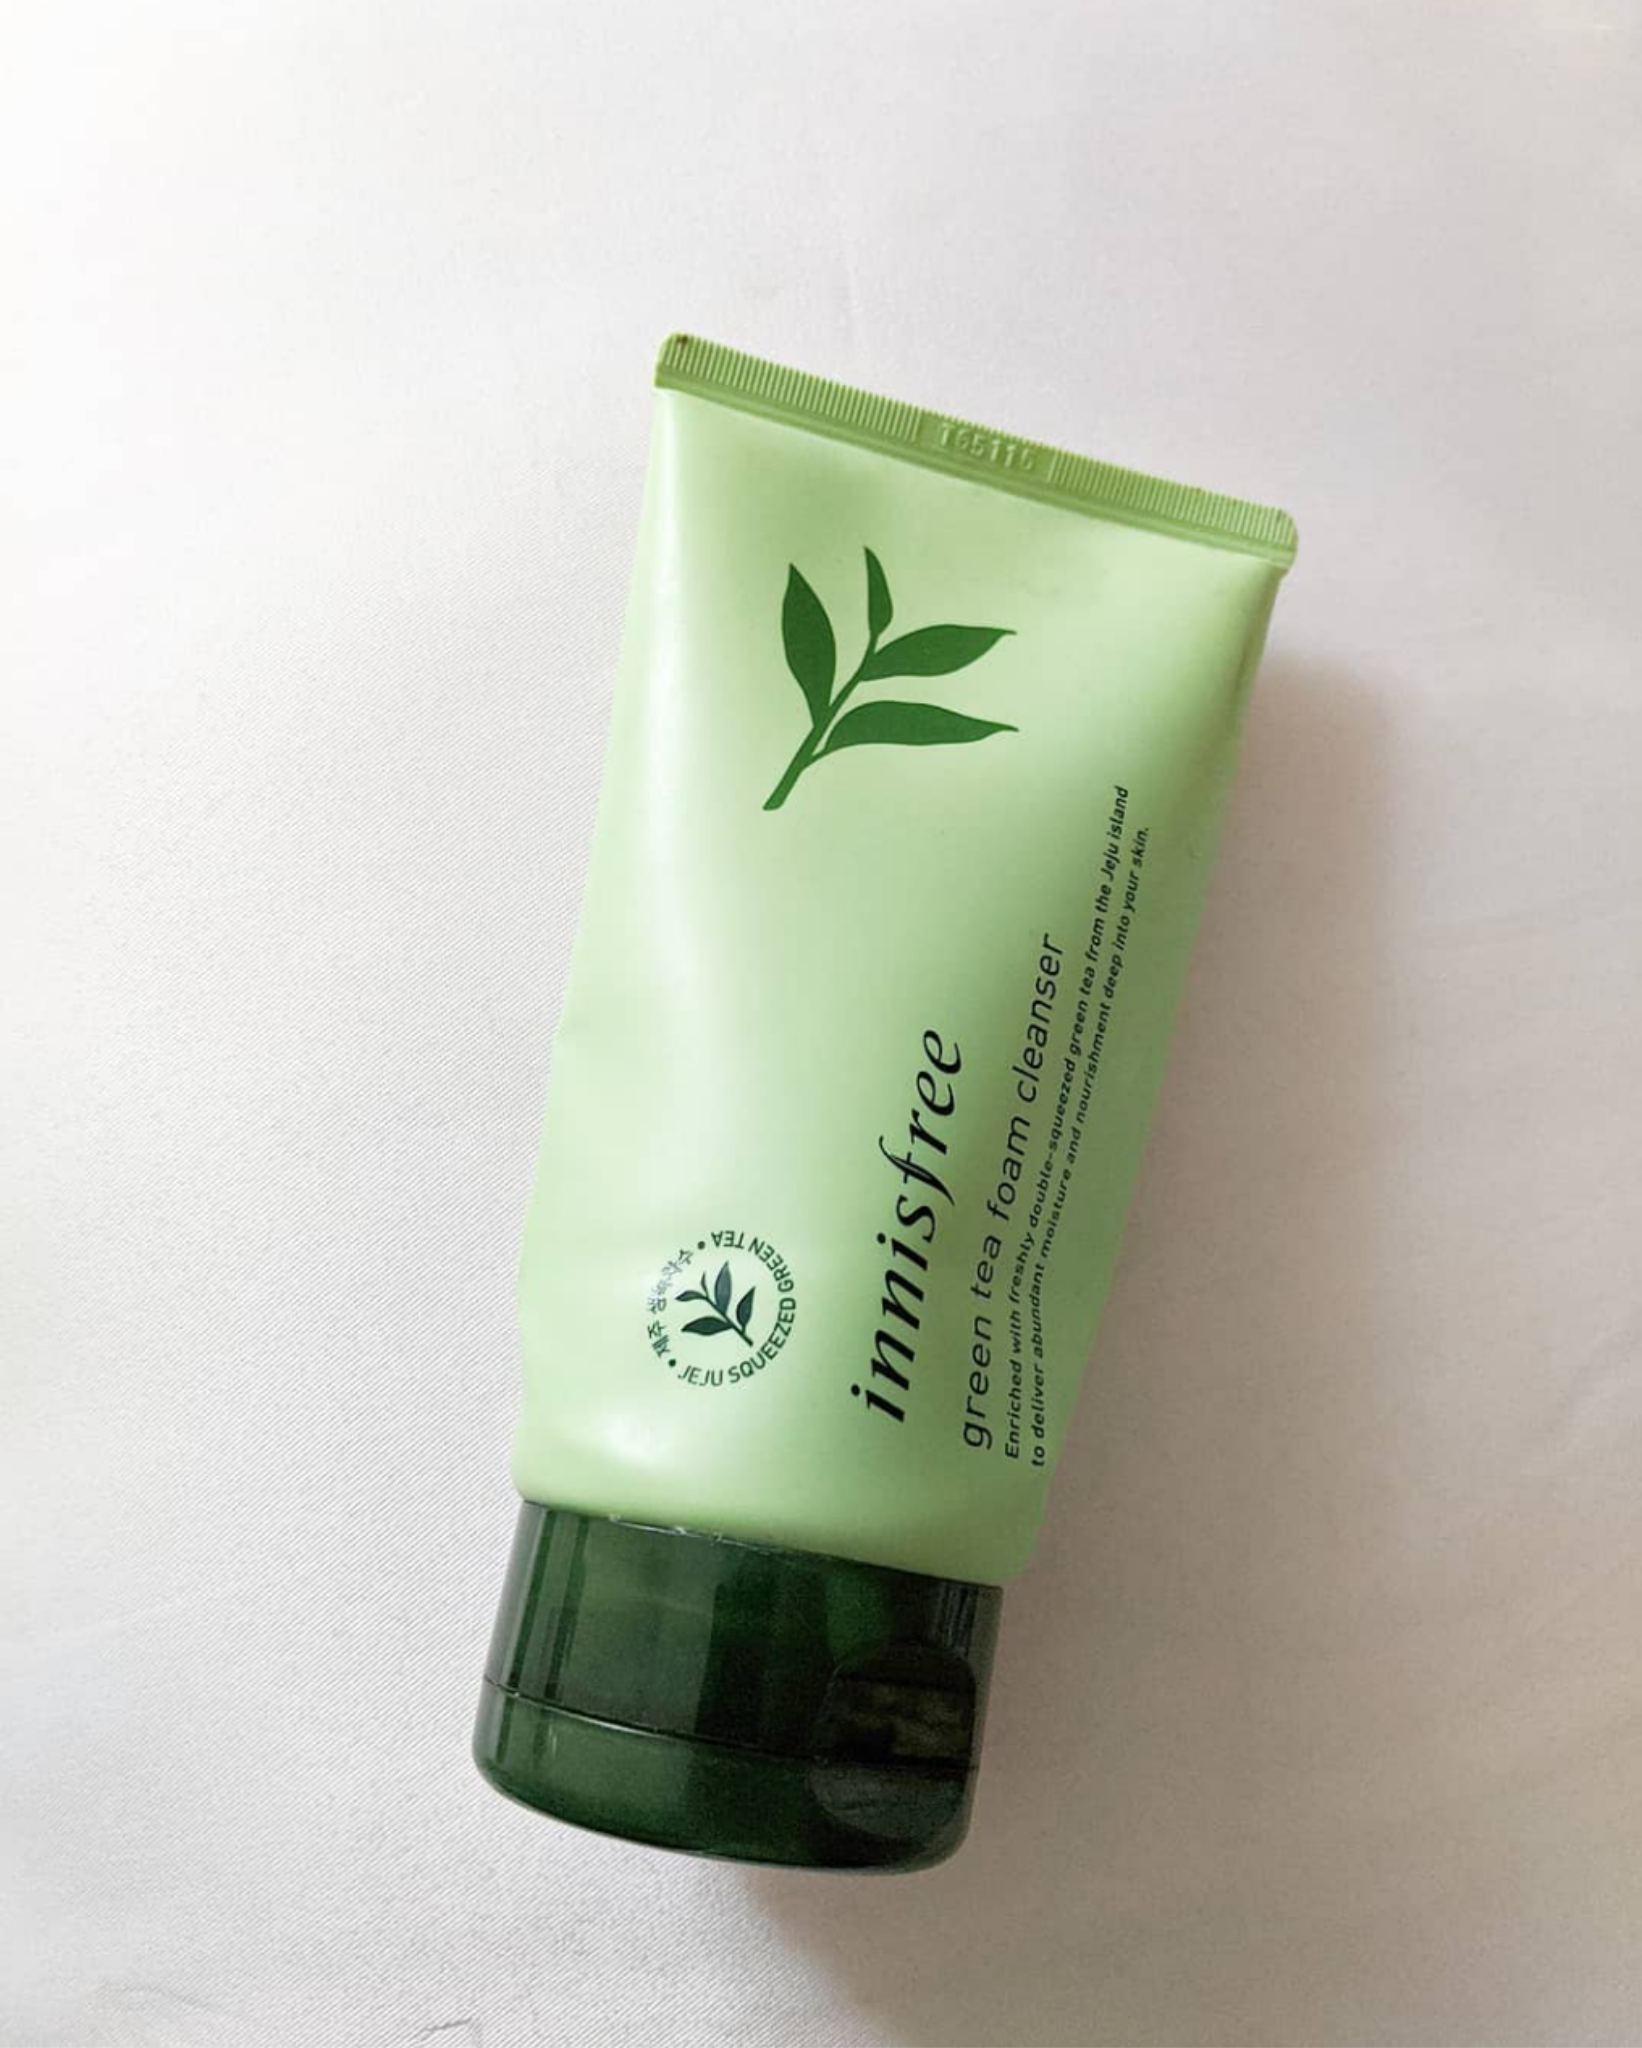 Innisfree Green Tea Cleansing Foam -Innisfree Green Tea Cleansing Foam-By thebeautybucket